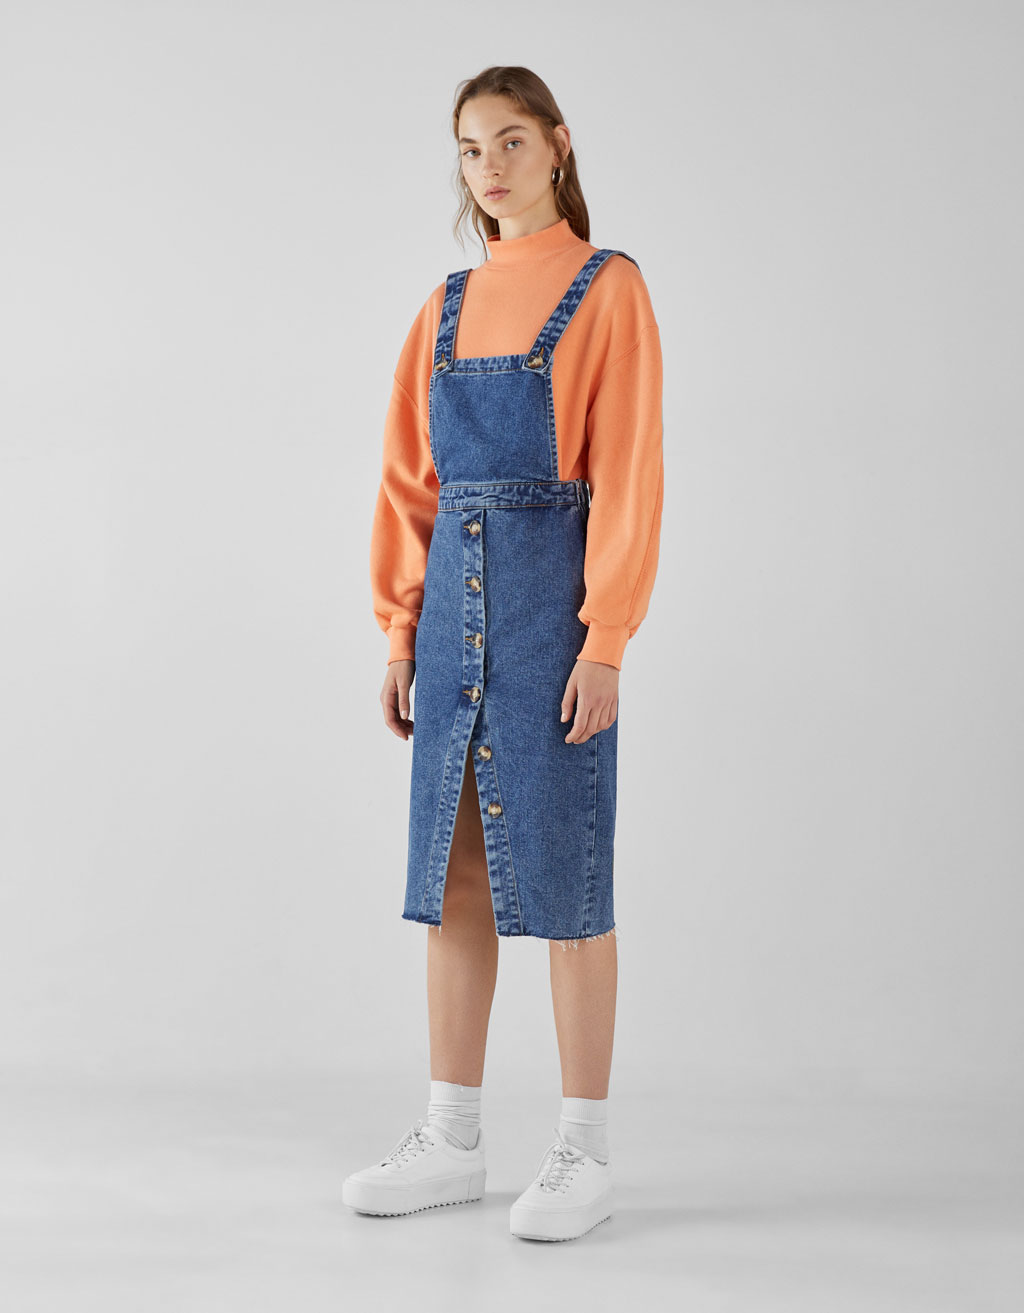 Denim skirt dungarees with buttons